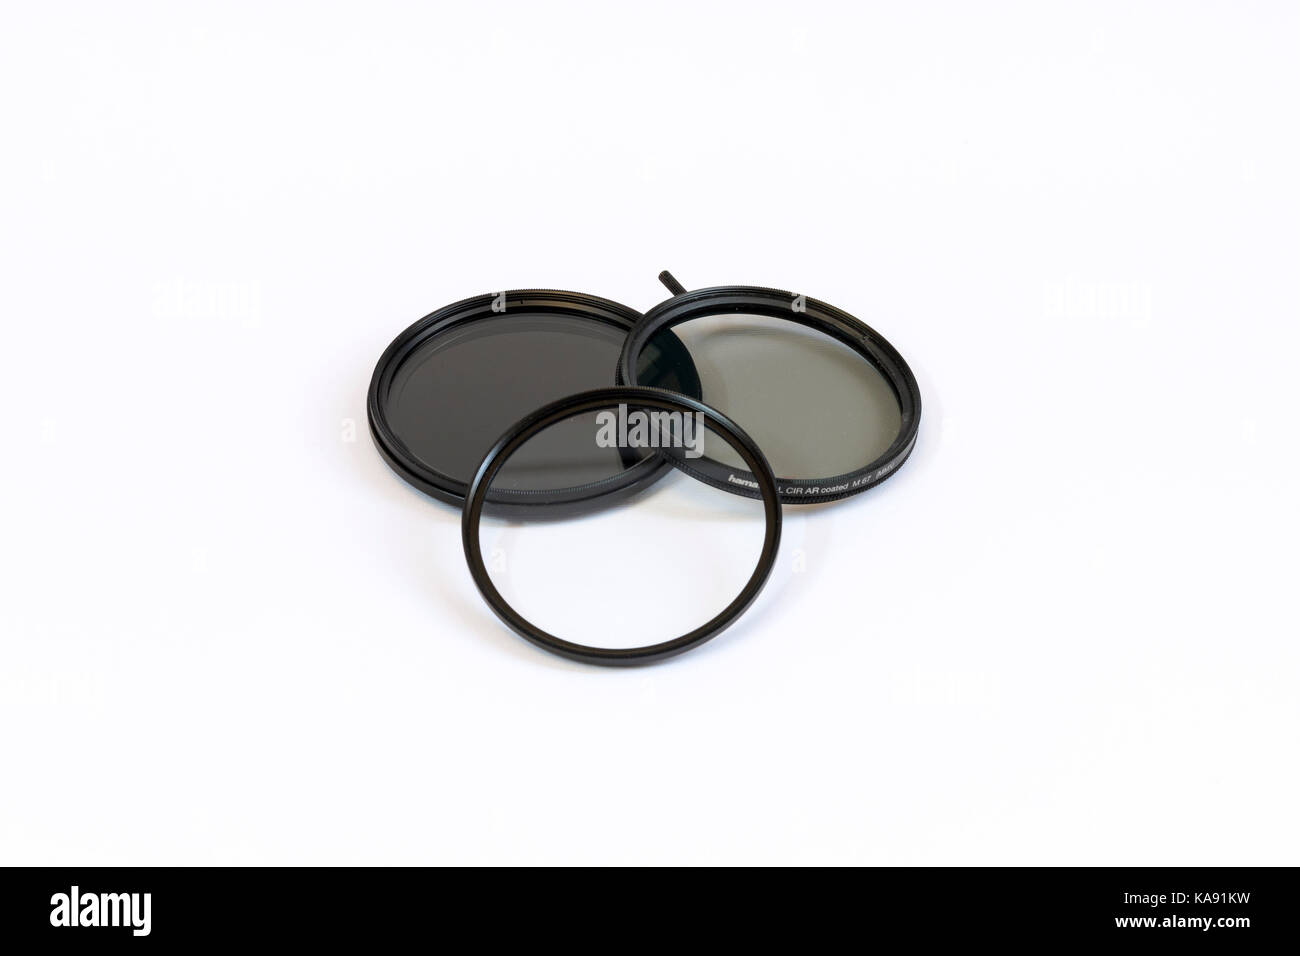 Camera lens filters - Ultra-Violet Filter (UV), Circular Polarizer Filter (CP), Neutral Density Filter (ND) - Stock Image